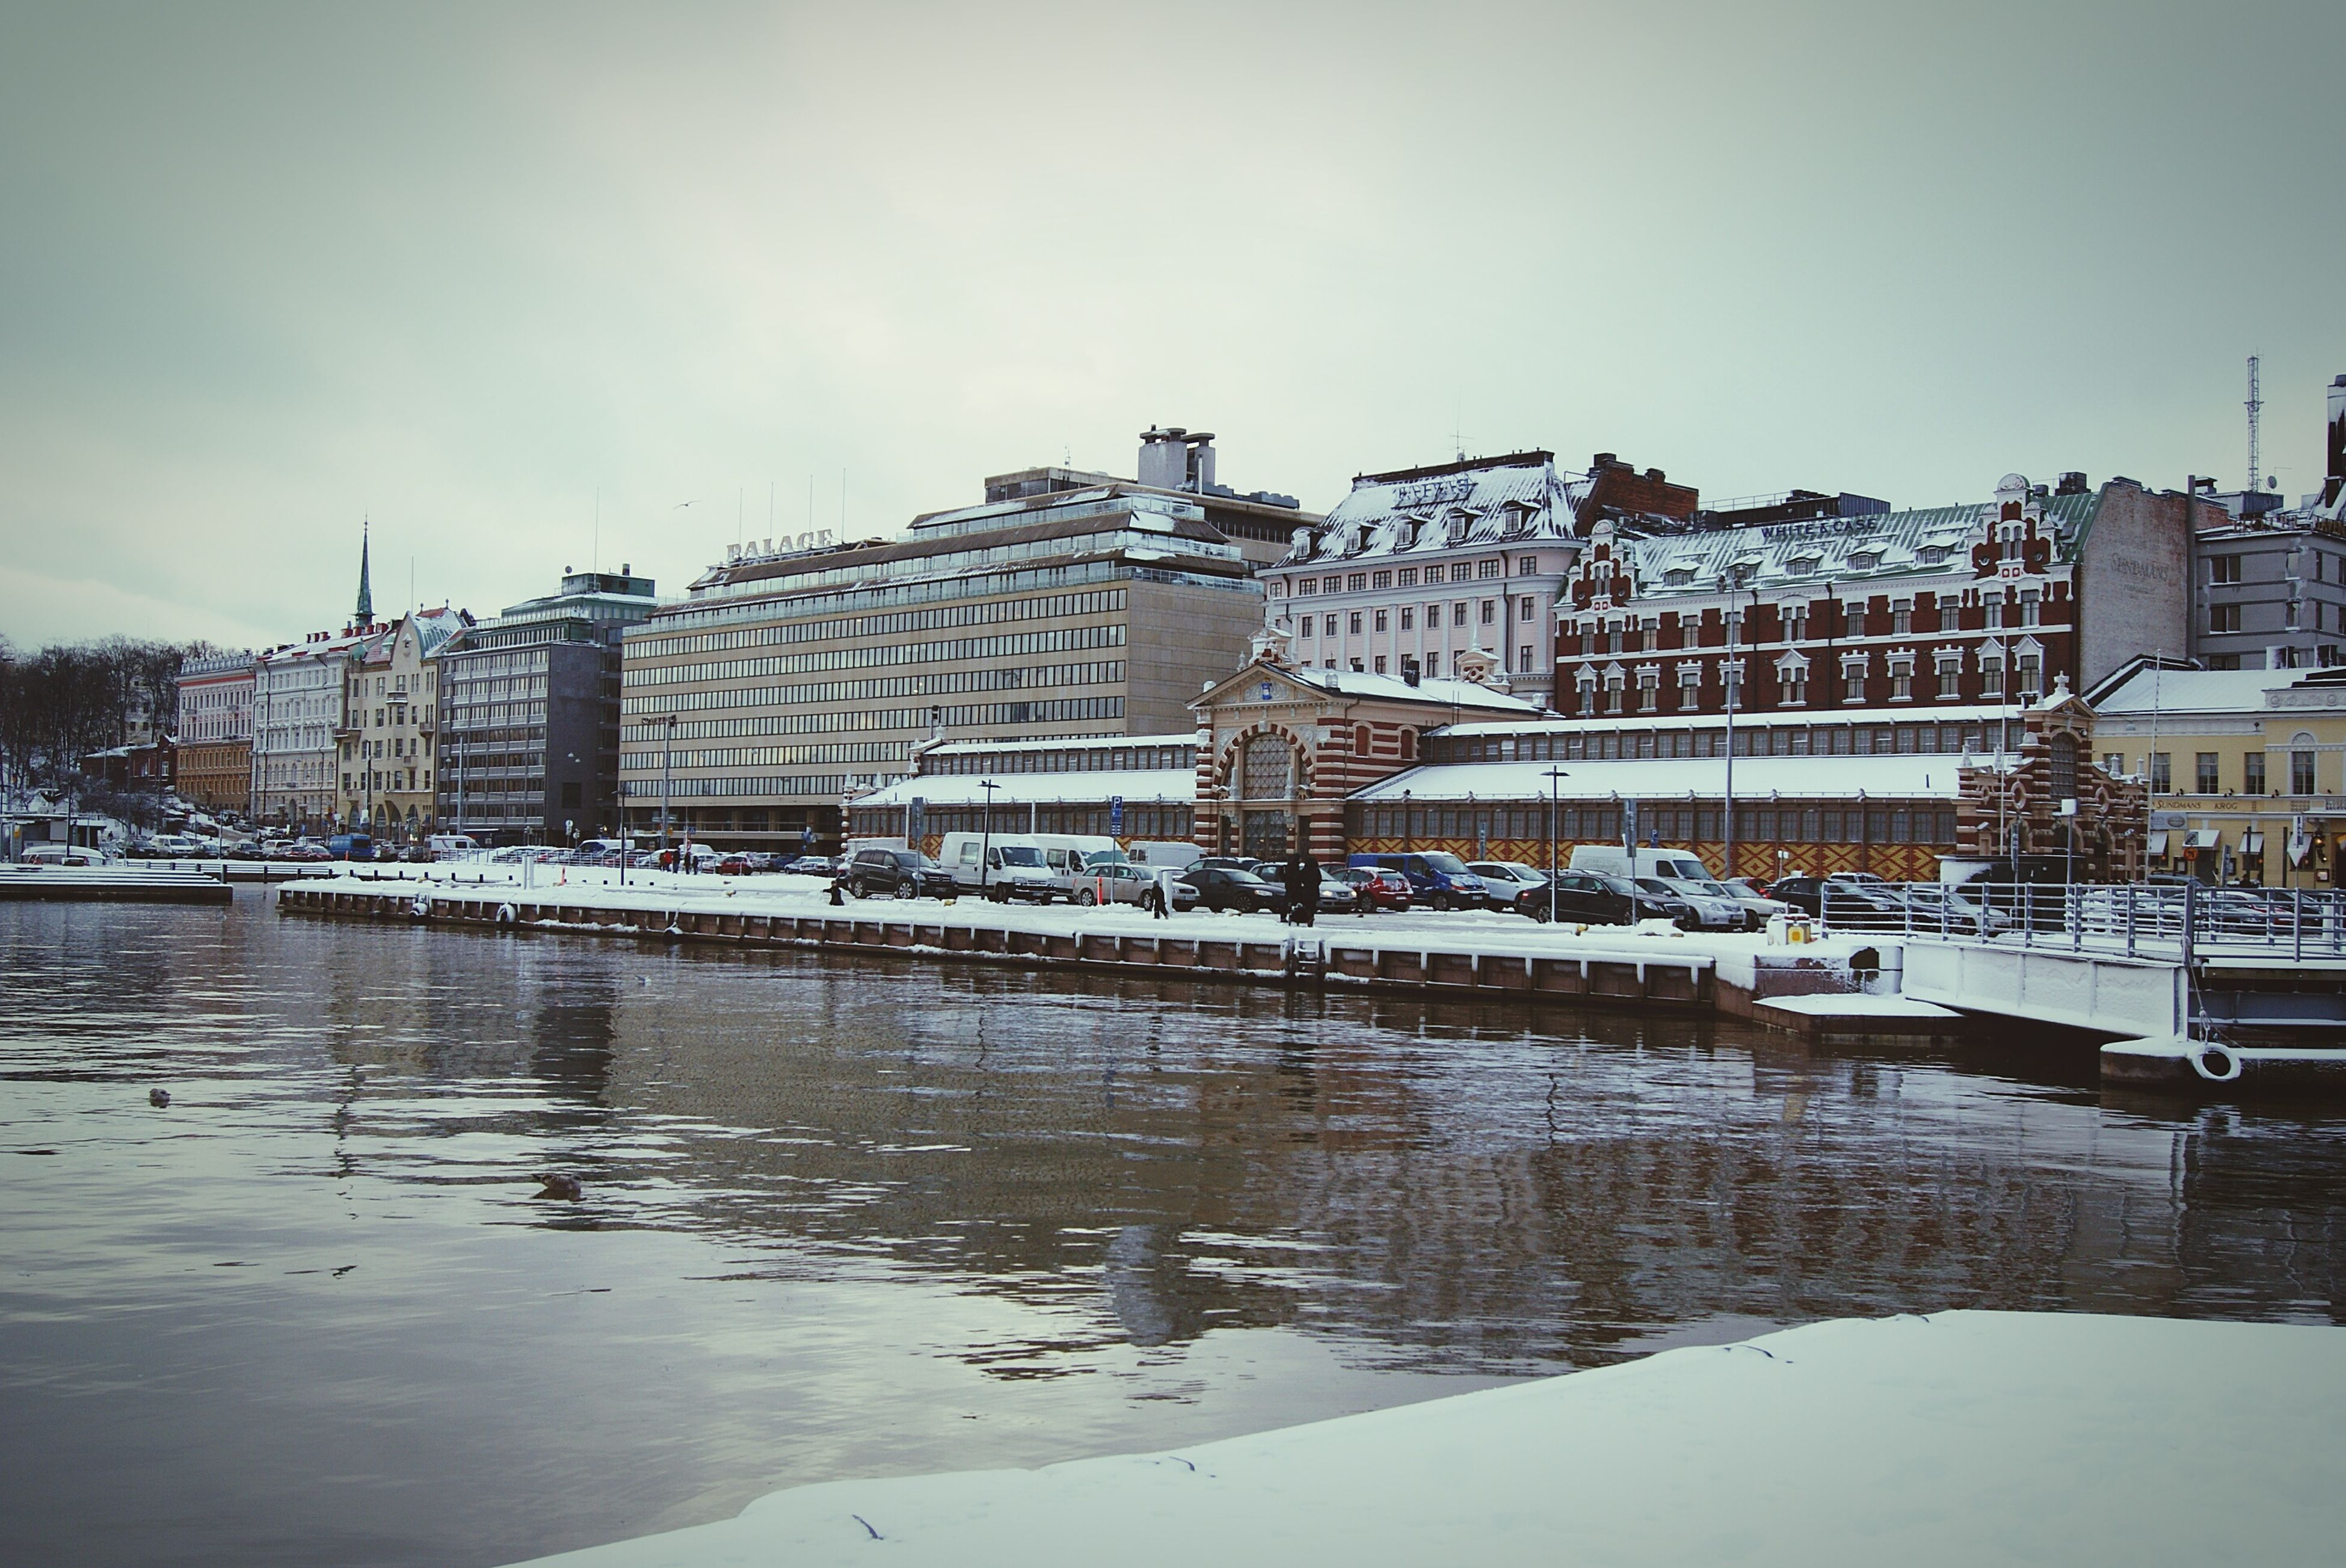 building exterior, architecture, built structure, water, sky, city, reflection, river, waterfront, winter, snow, cold temperature, residential structure, transportation, residential building, building, lake, house, season, weather